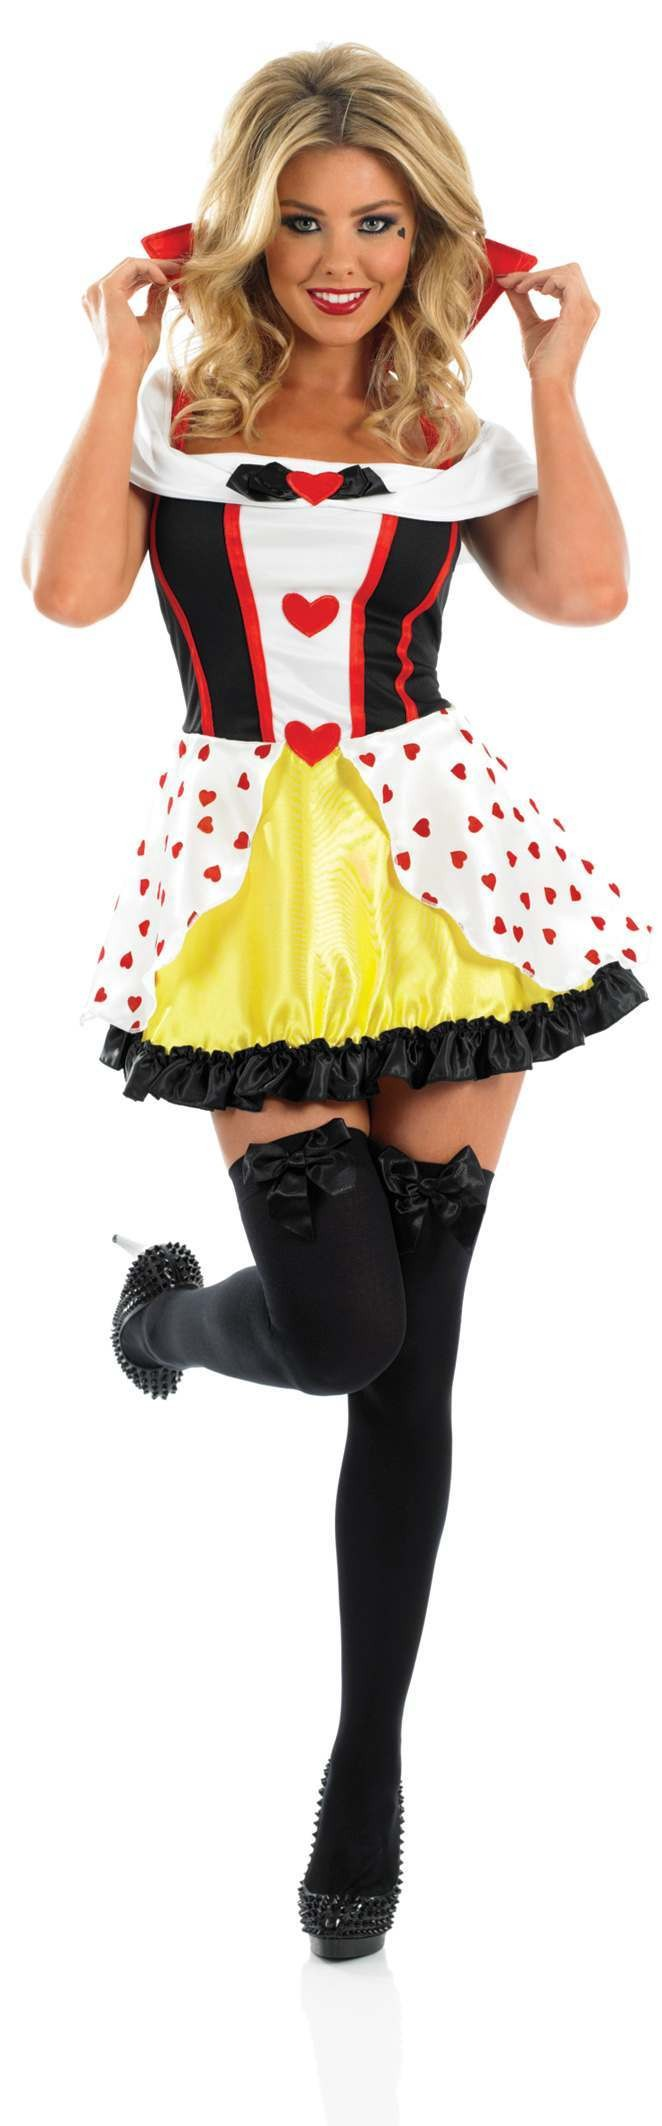 Ladies Queen Of Hearts Fairy Tales Outfit - Size 20-22 (Black, White)